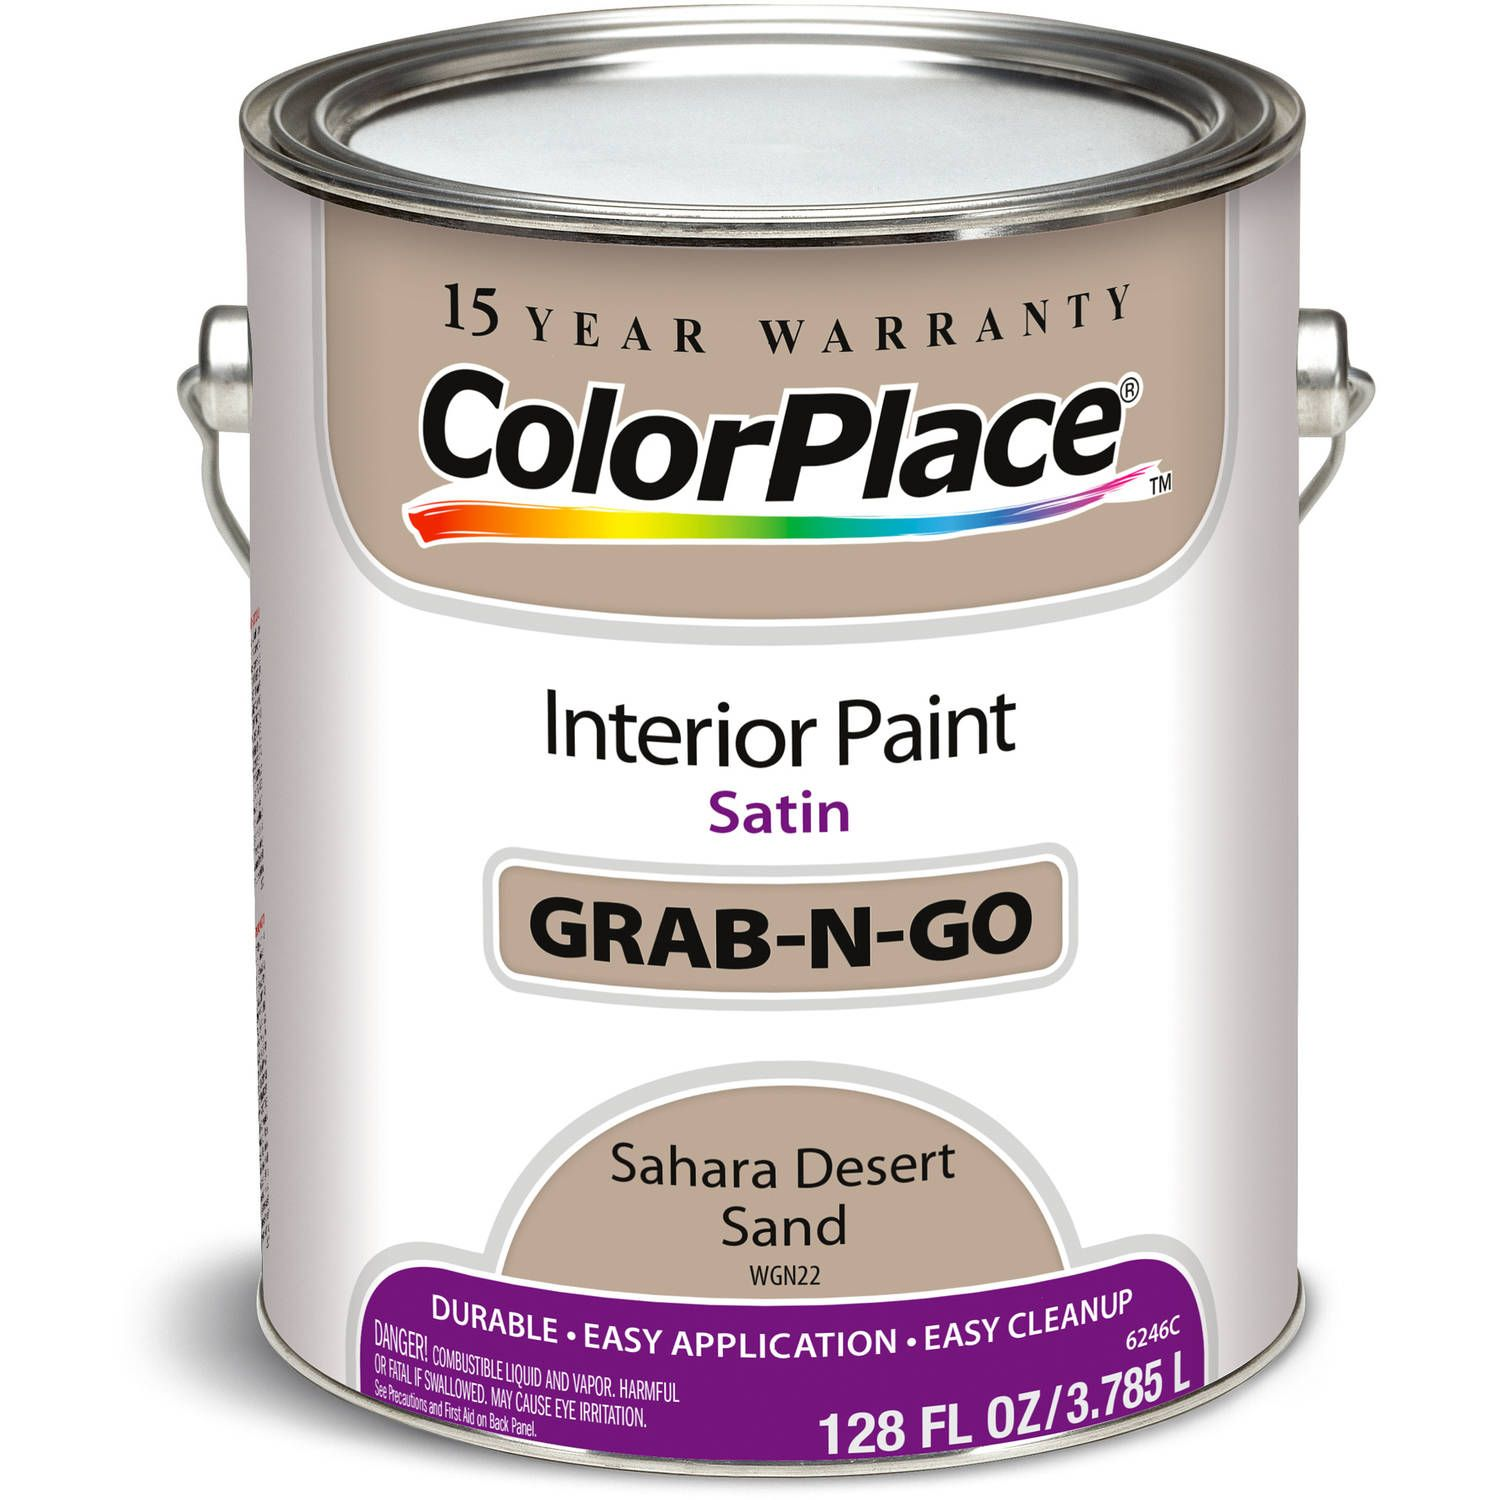 ColorPlace Pre Mixed Ready To Use, Interior Paint, Sahara